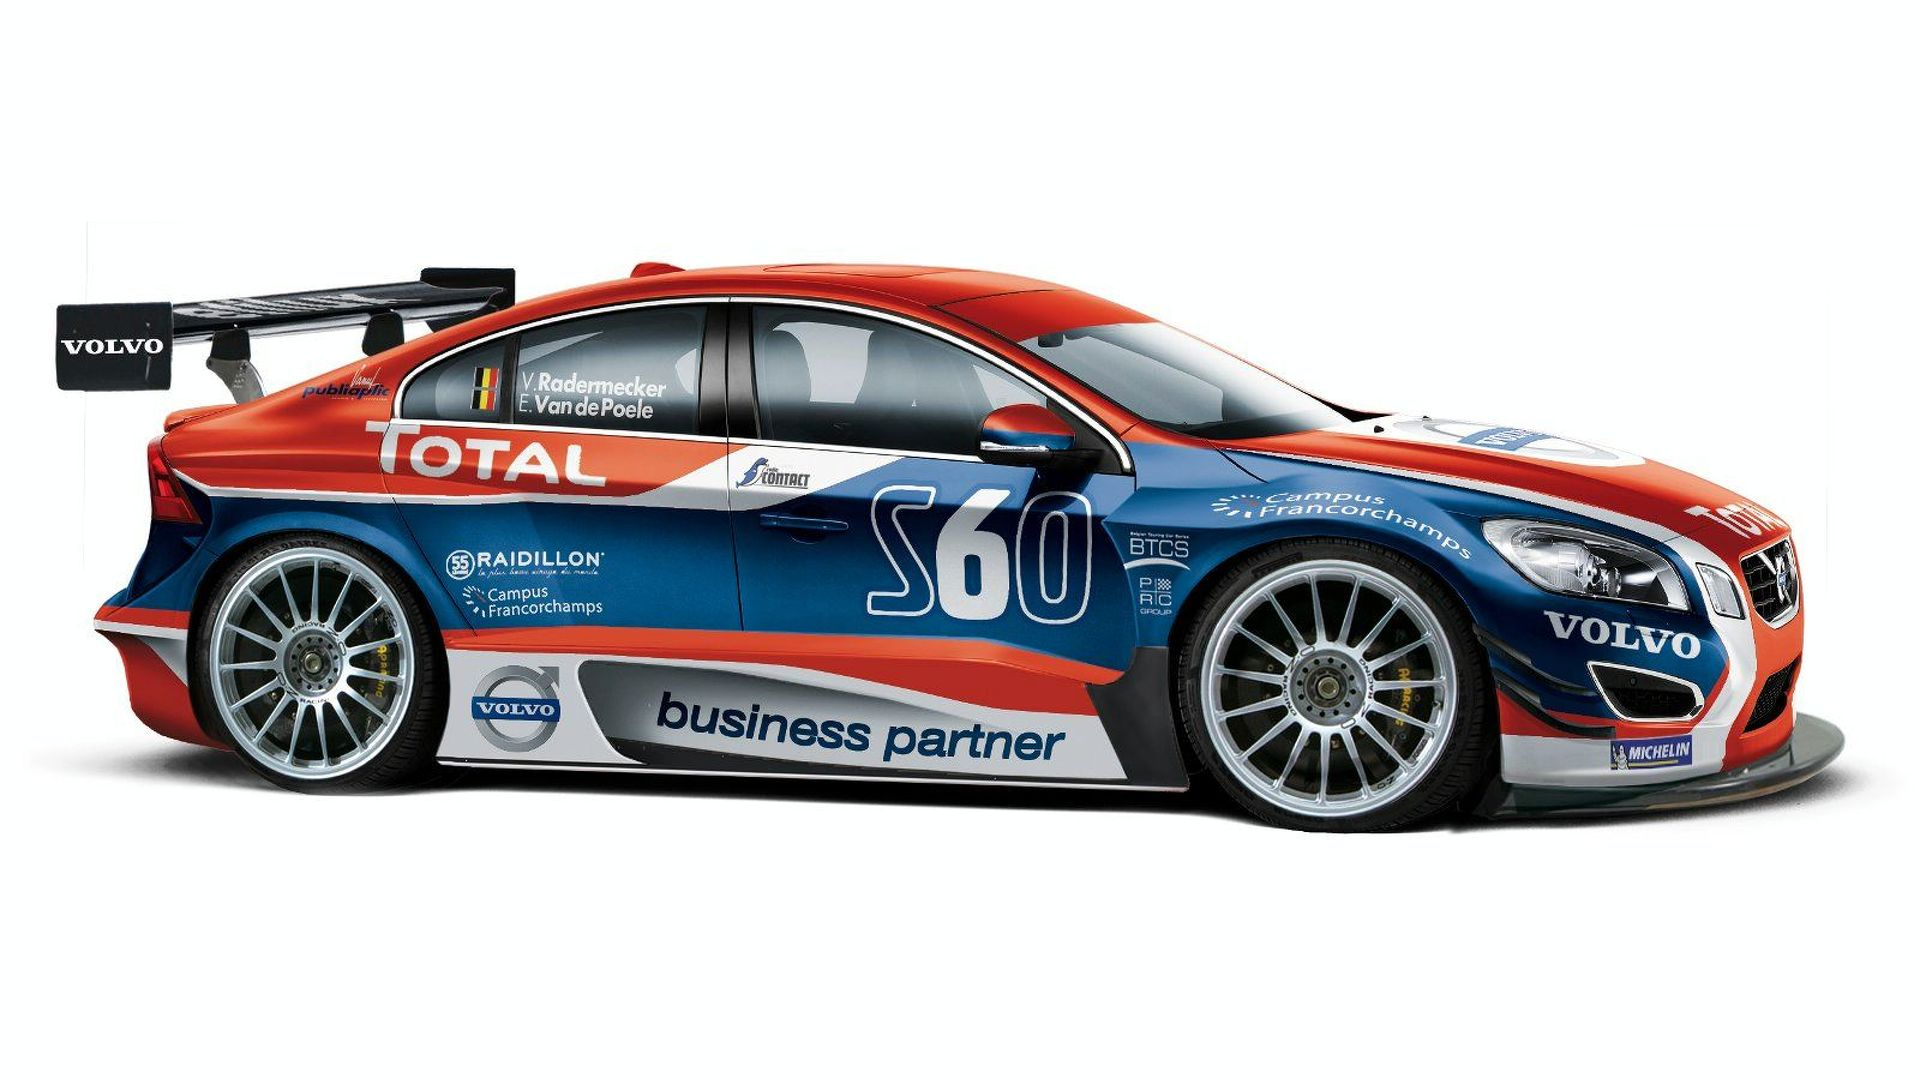 49f444f94e Volvo Preparing All-New S60 for Belgian Touring Car Series